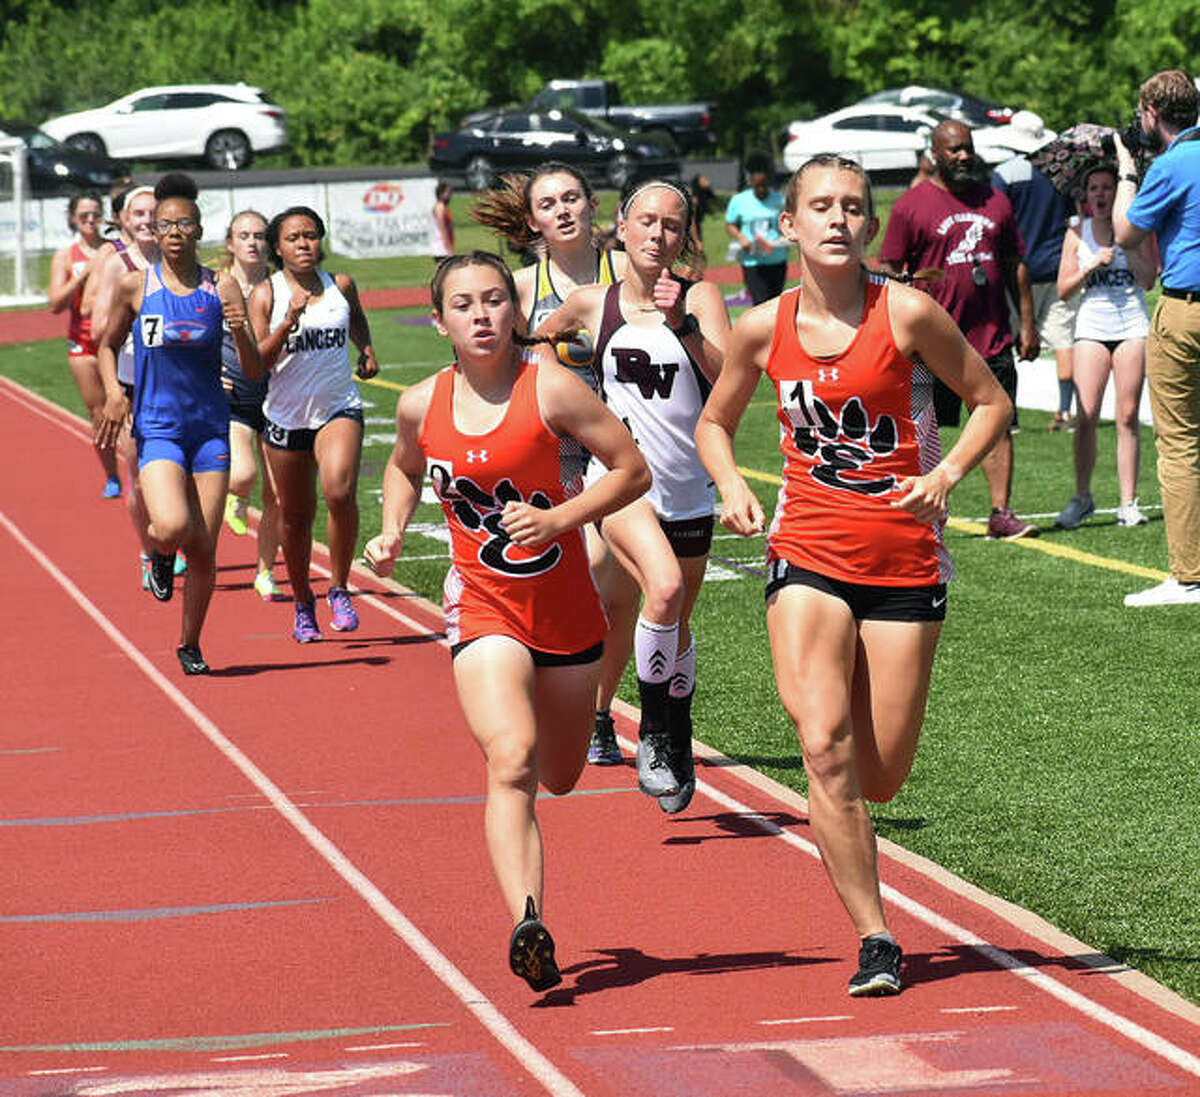 Edwardsville teammates Olivia Coll, left, and Kaitlyn Loyet lead the pack during the 3,200-meter run the Southwestern Conference Meet at Collinsville.